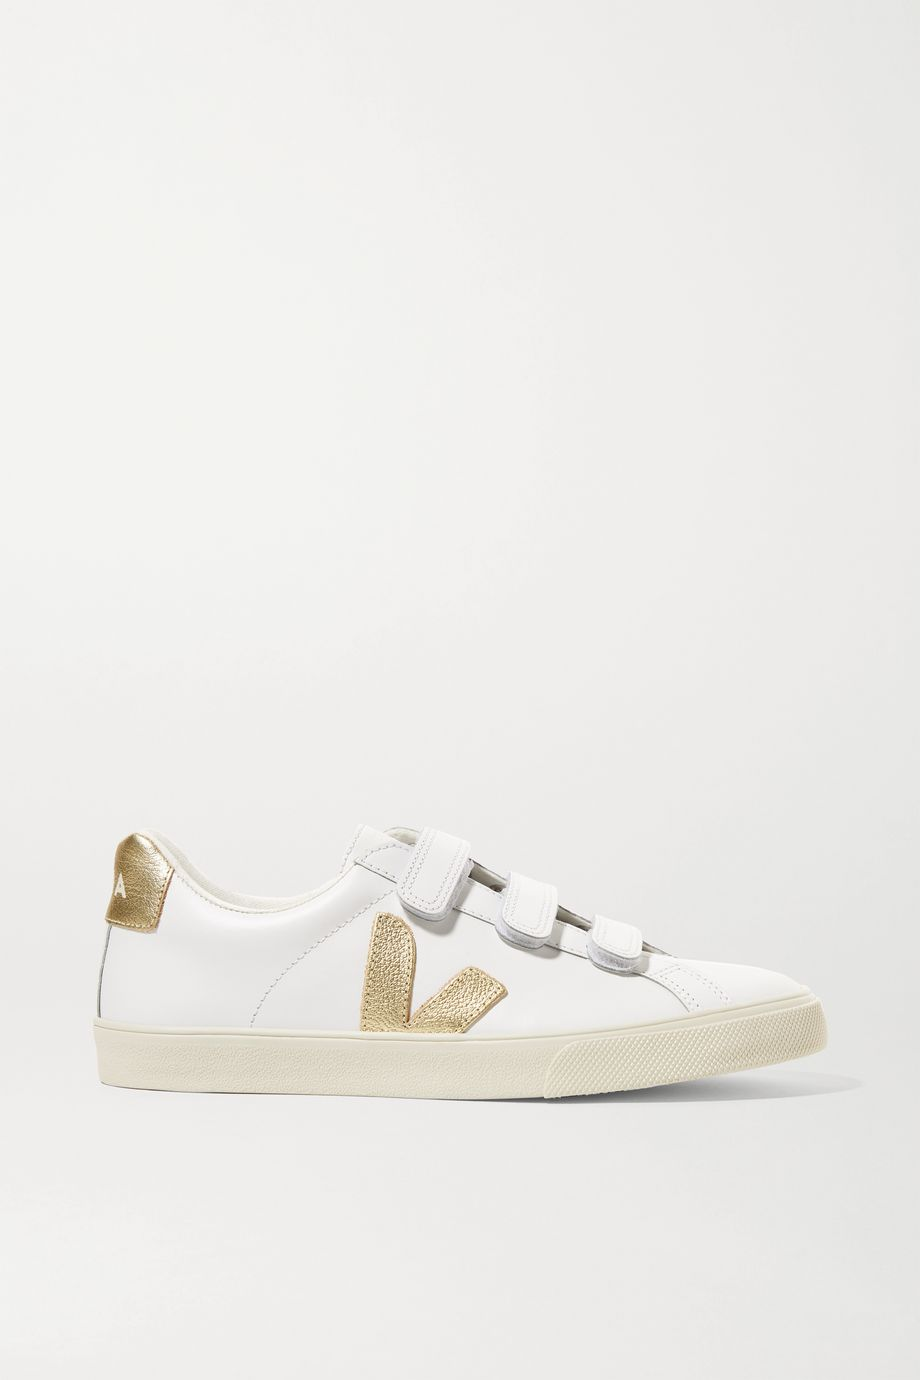 Veja + NET SUSTAIN 3-Lock Logo metallic-trimmed leather sneakers